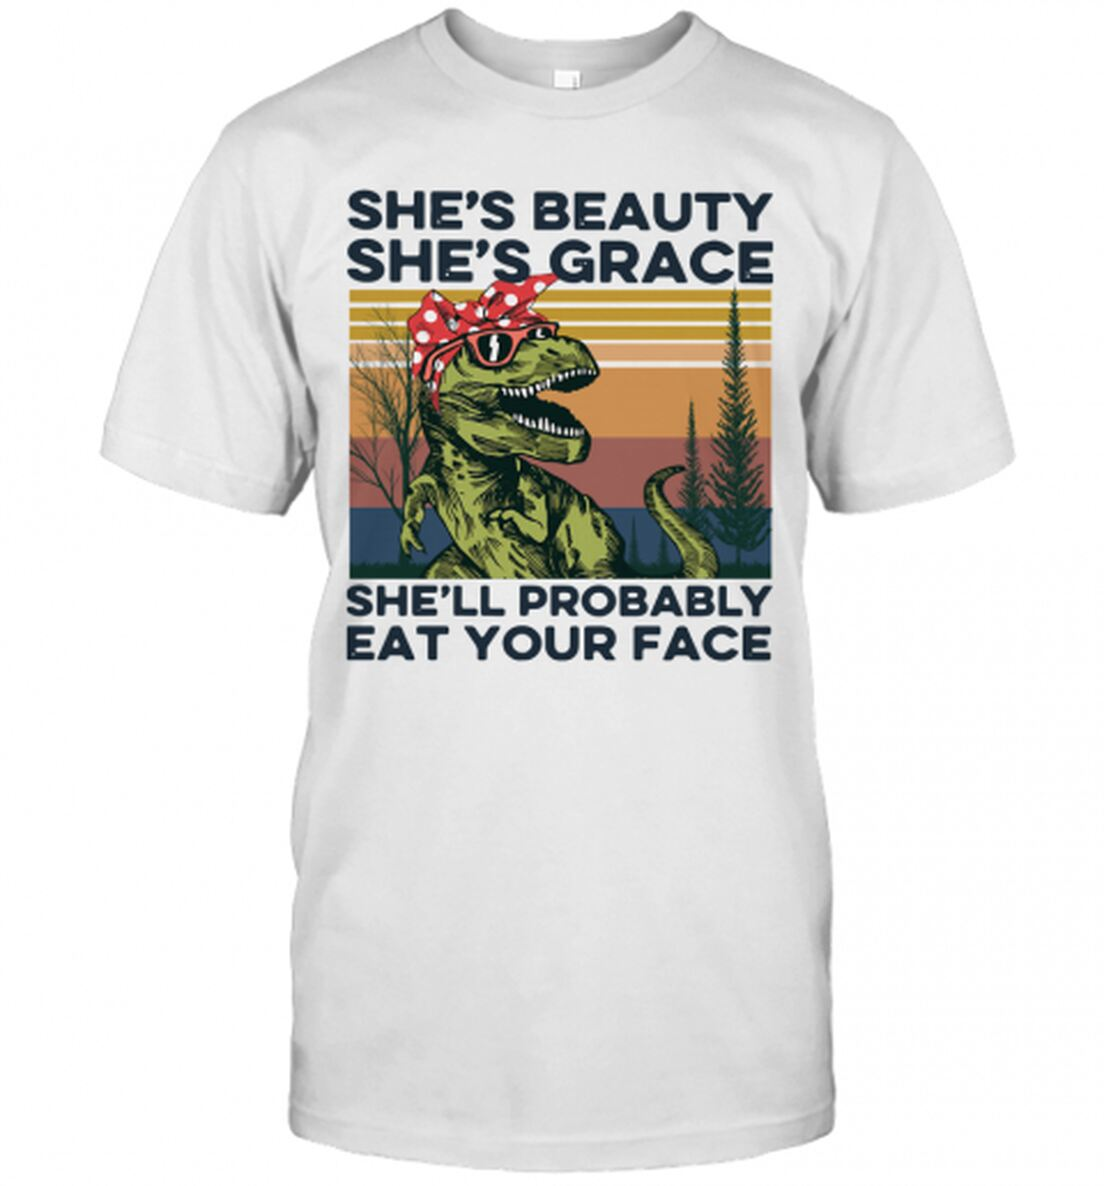 She'S Beauty She'S Grace She'Ll Probably Eat Your Face Vintage T-Shirt